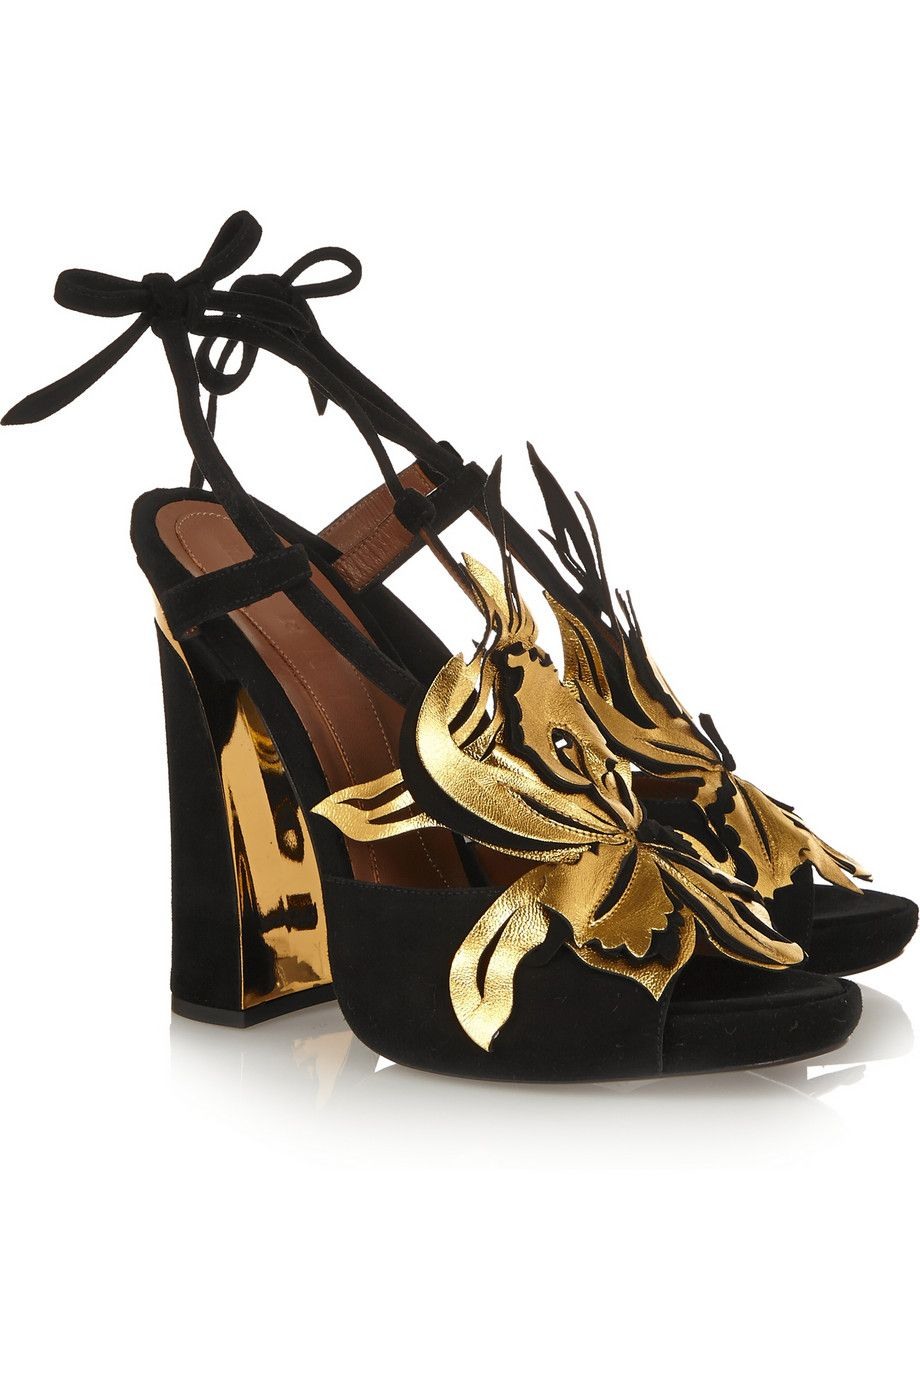 Marniopen-toe sandals with agold leatherorchid, and metallic-trimmed heel. #shoes